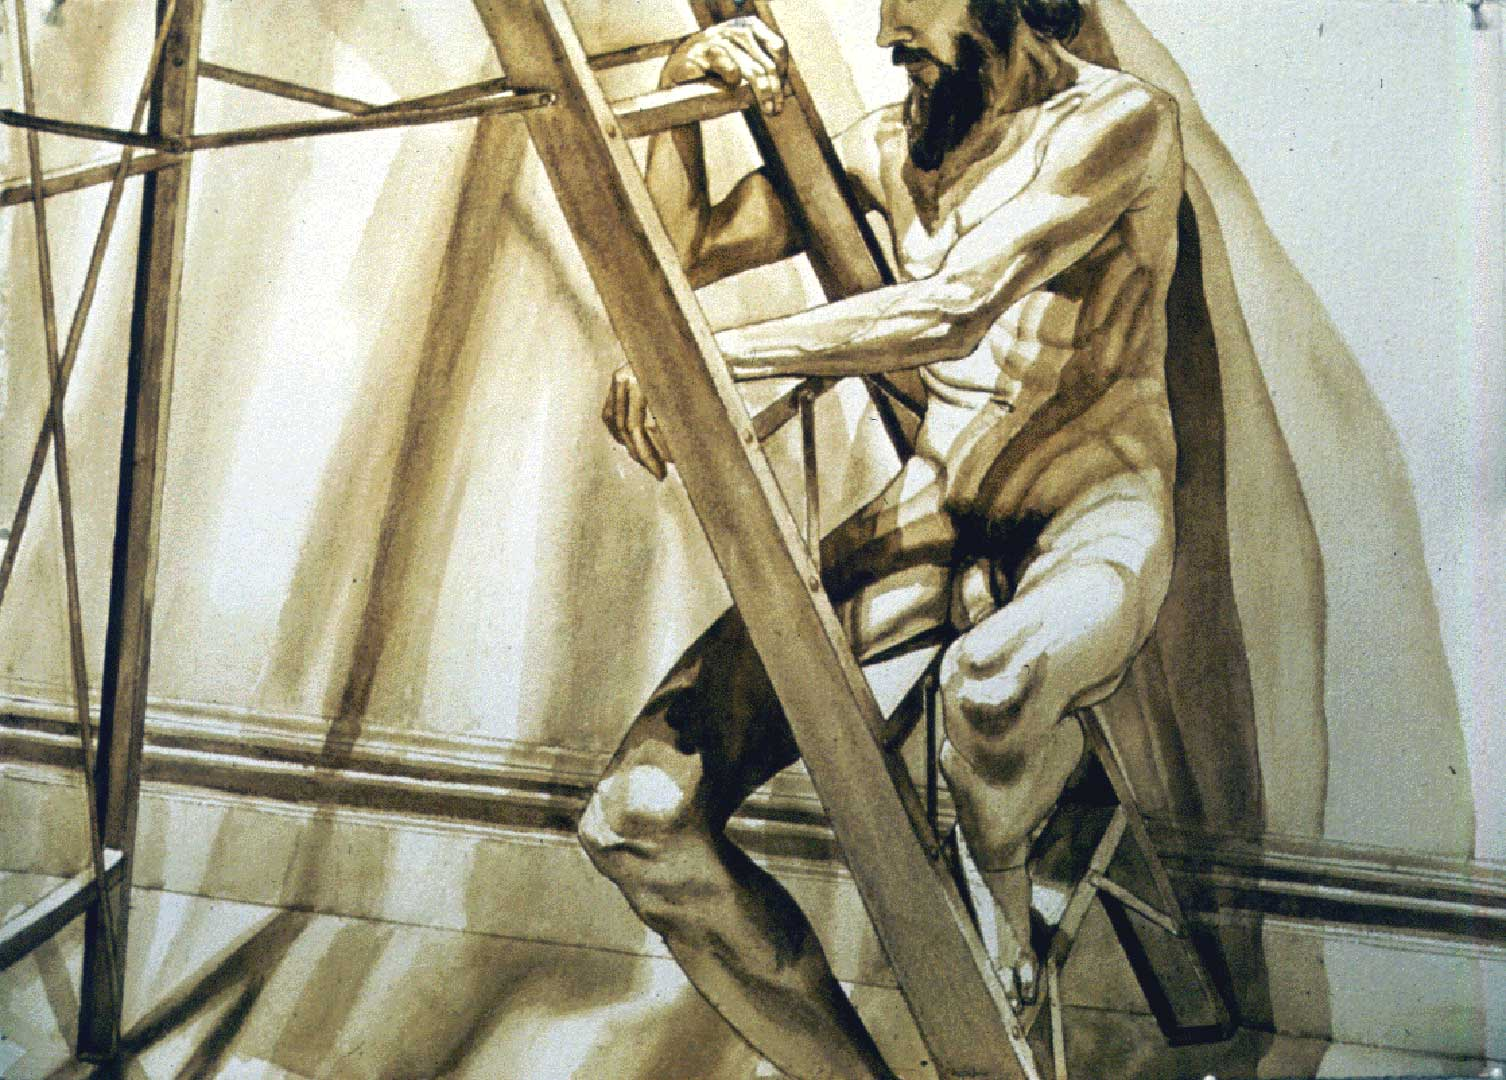 1996 Male Model on Ladder Sepia Wash 29.25 x 41